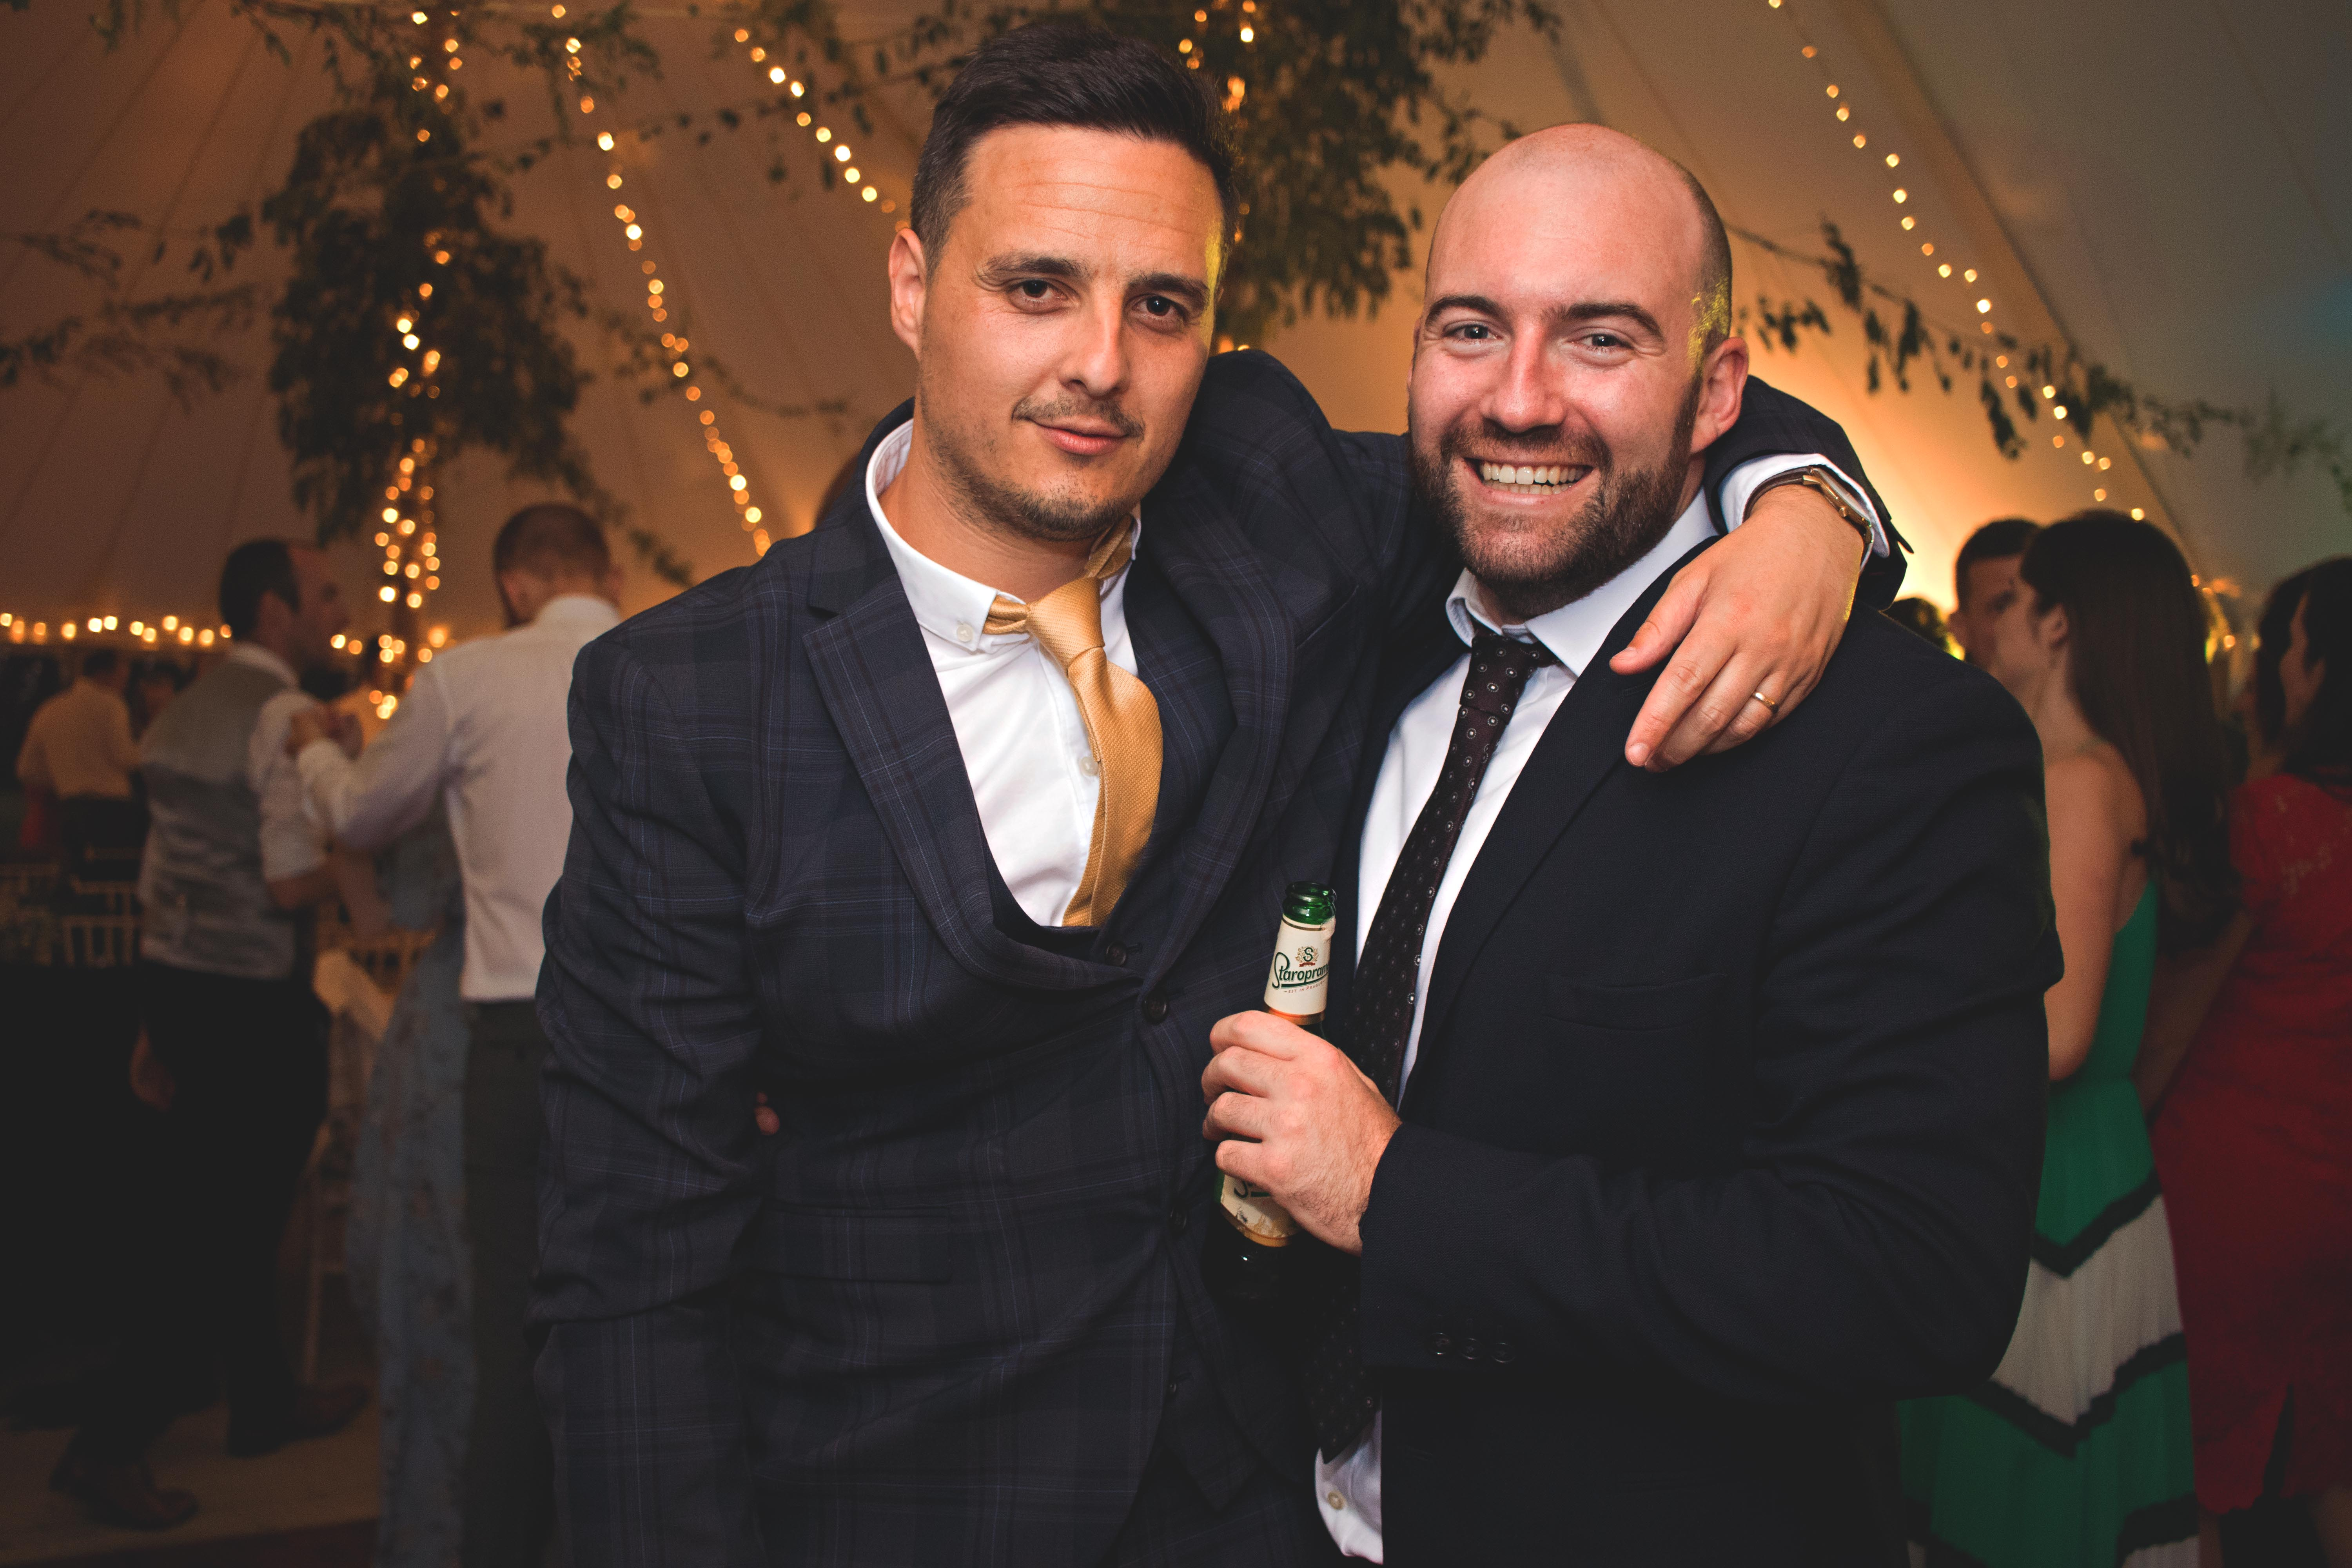 Party Wedding Guest Photography